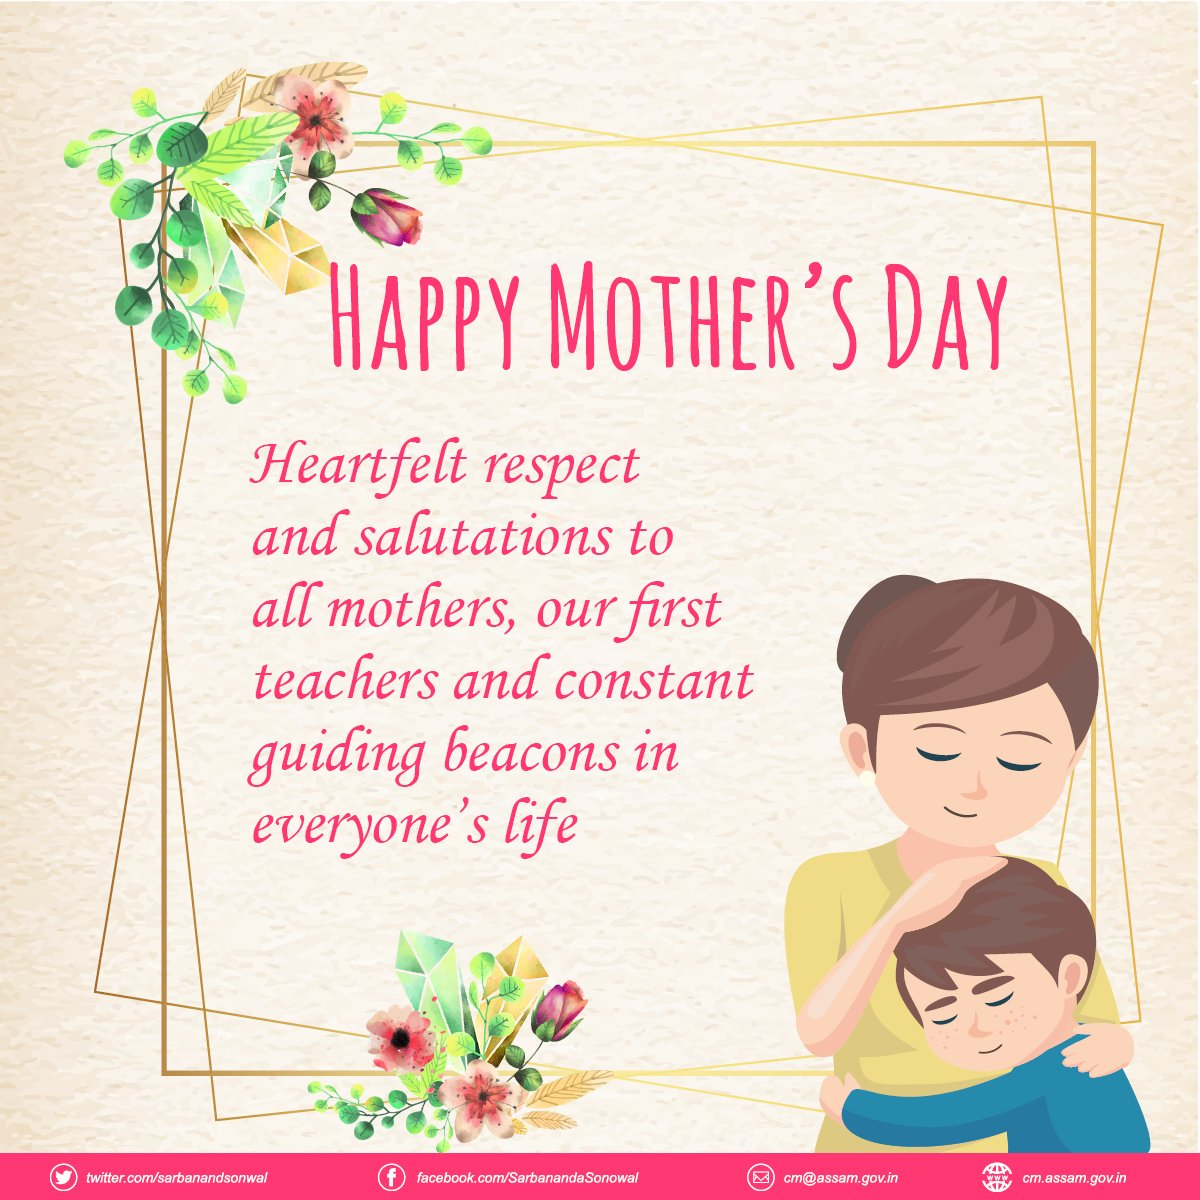 "Sarbananda Sonowal on Twitter: ""Heartfelt respect and salutations to all mothers, our first teachers and constant guiding beacons in everyone's life. #HappyMothersDay… https://t.co/fxivb6VGQj"""